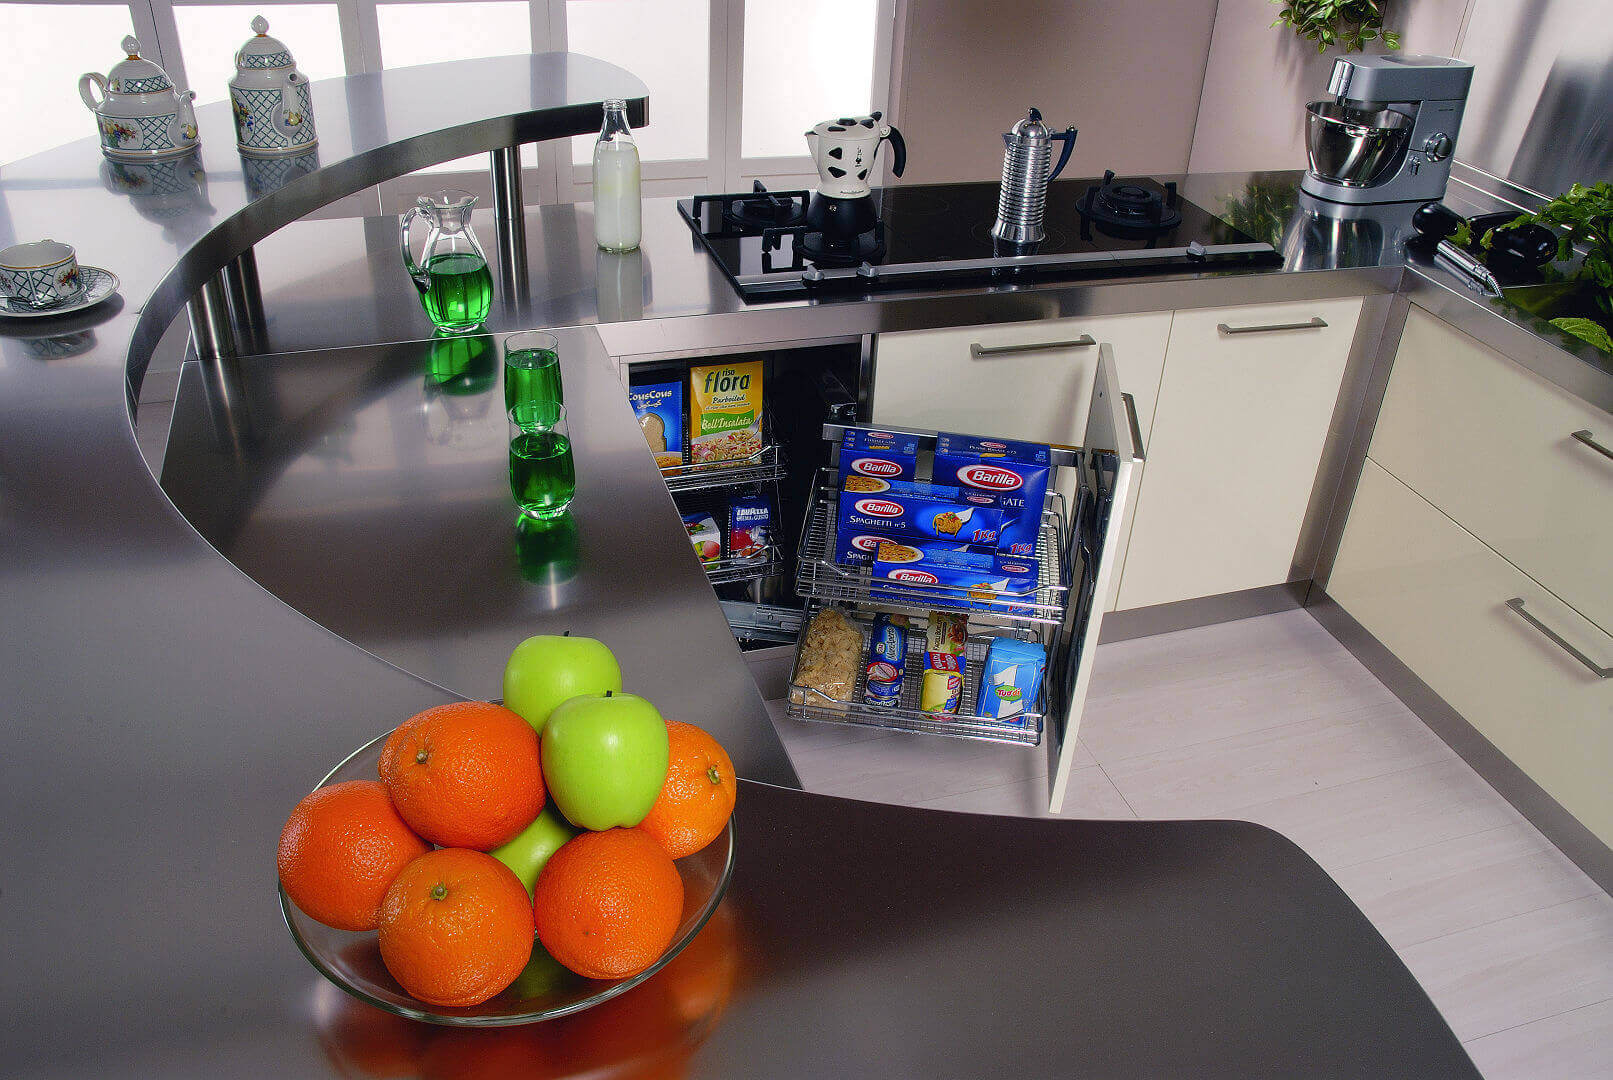 Arca Cucine Italy - Domestic stainless steel kitchens - Retunne - snack Bar